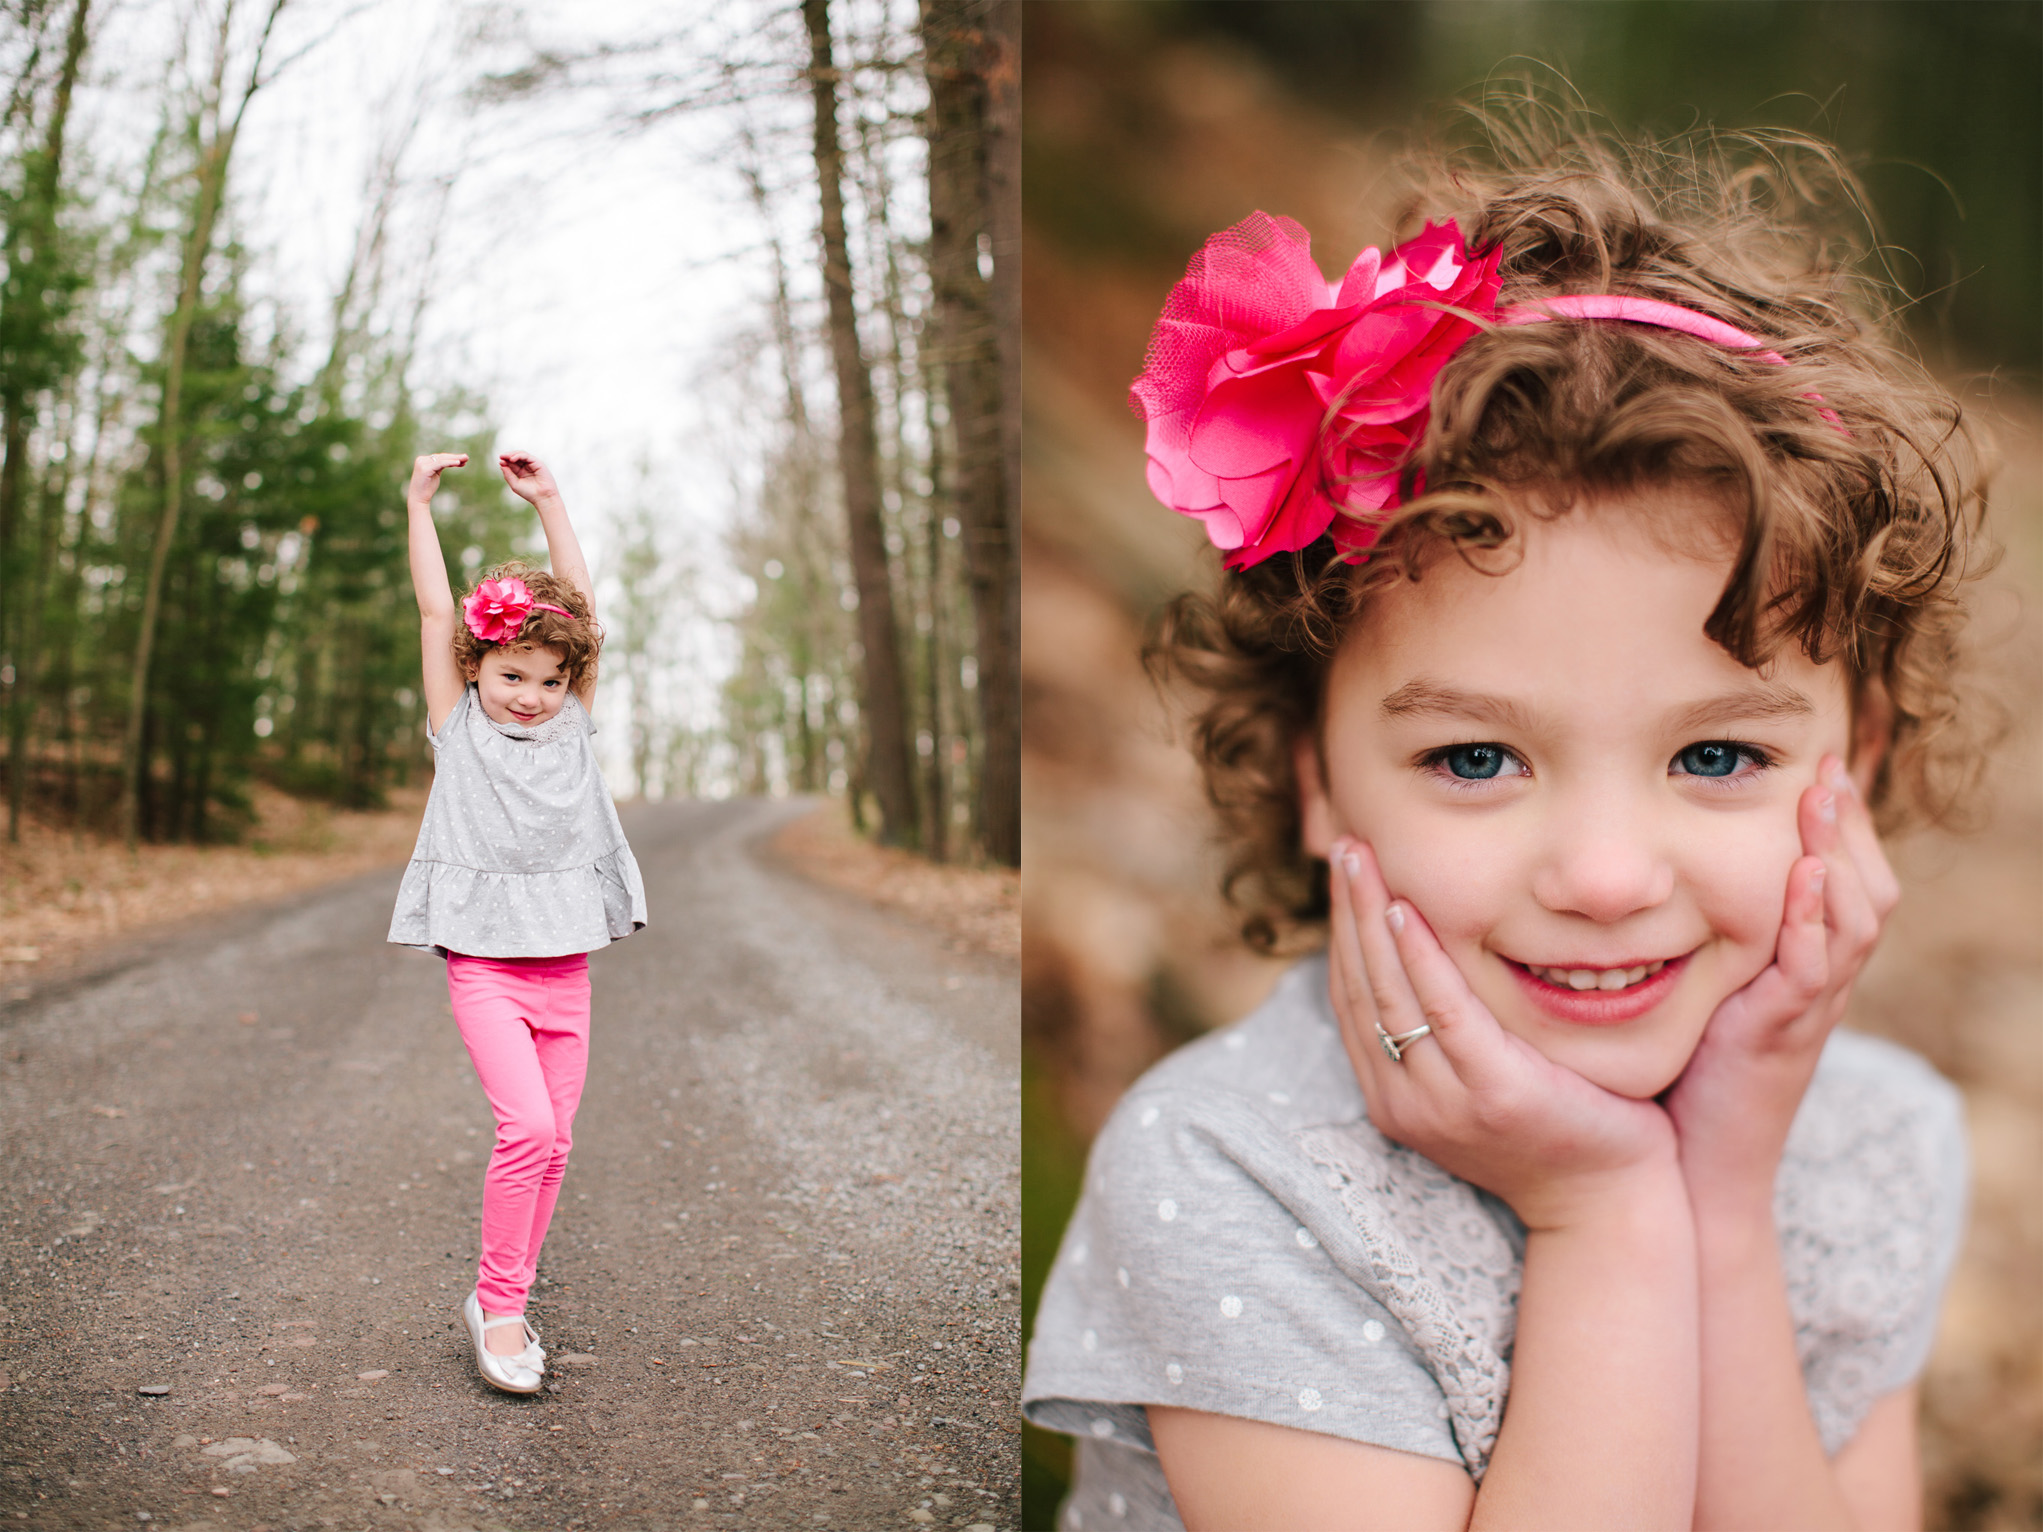 conroy_family_tierney_cyanne_photography_blog_2.jpg